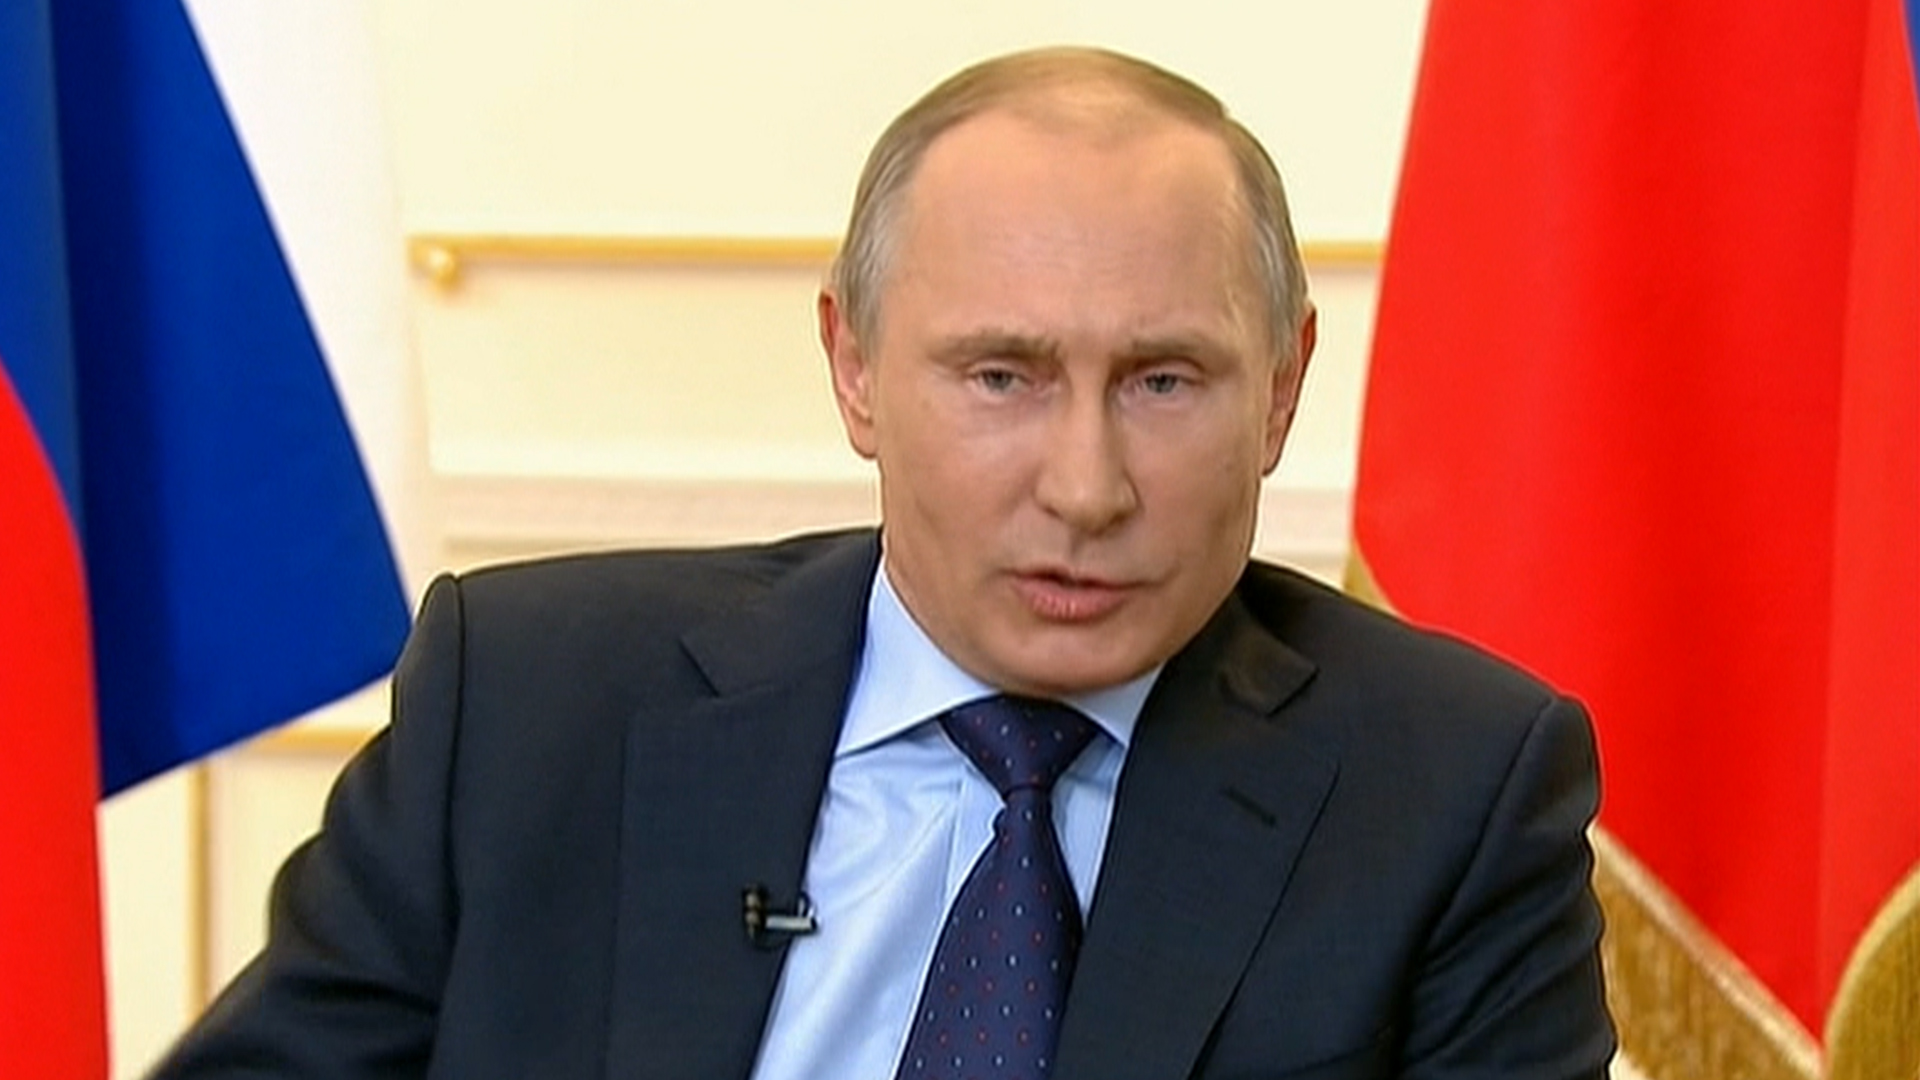 'Putin not about to lose Crimea'